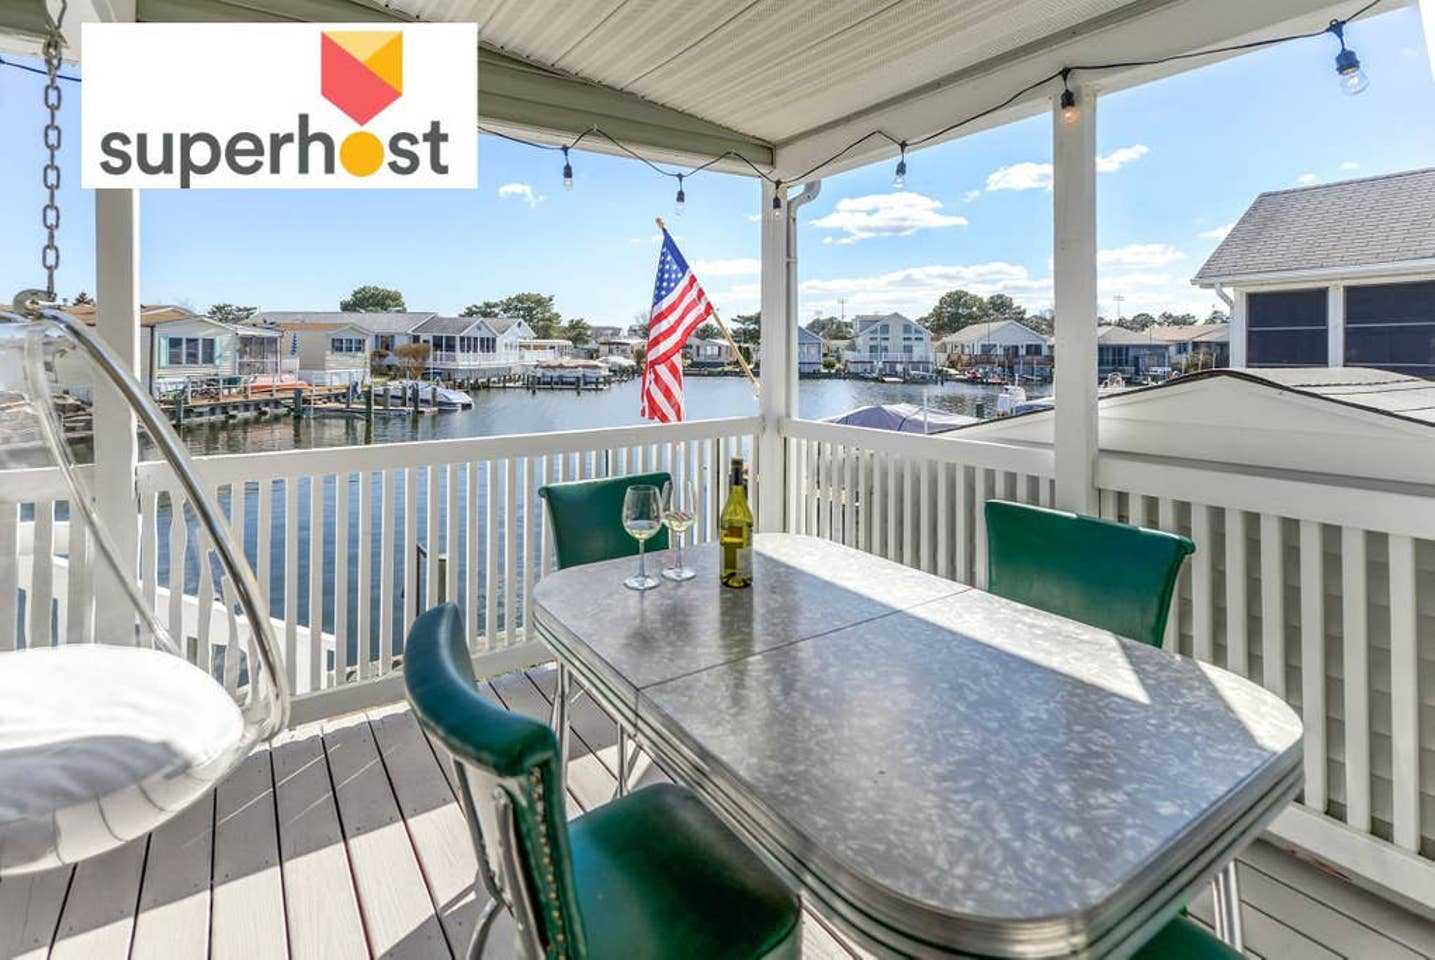 Superhost Airbnb Ocean City Maryland